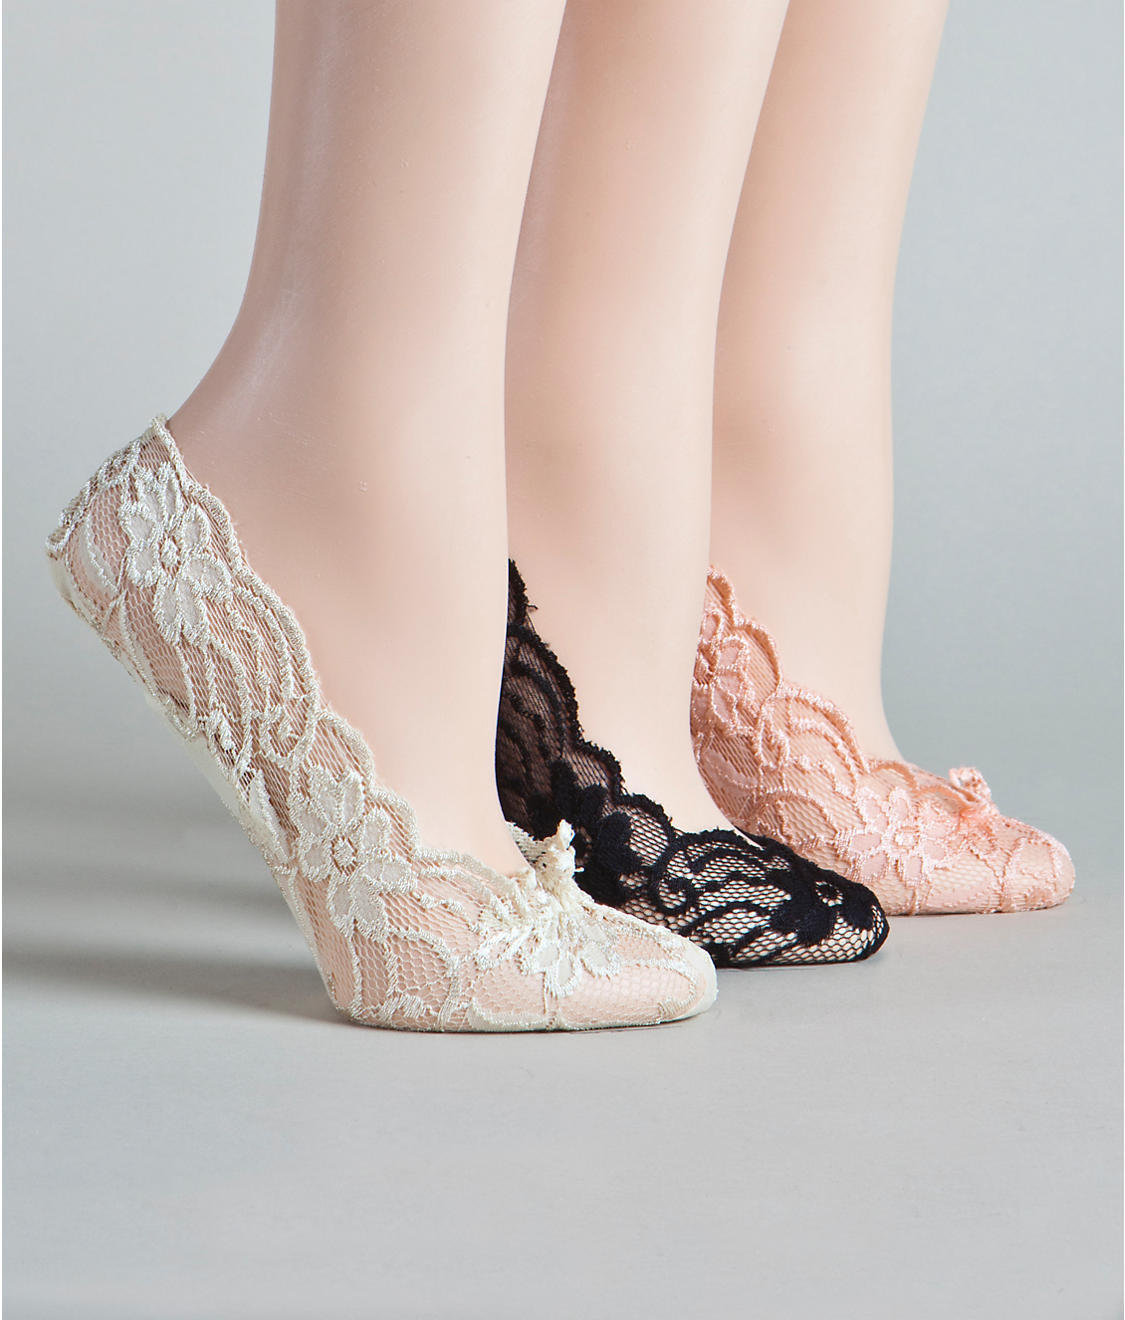 Cushioned Lace Shoe Liners